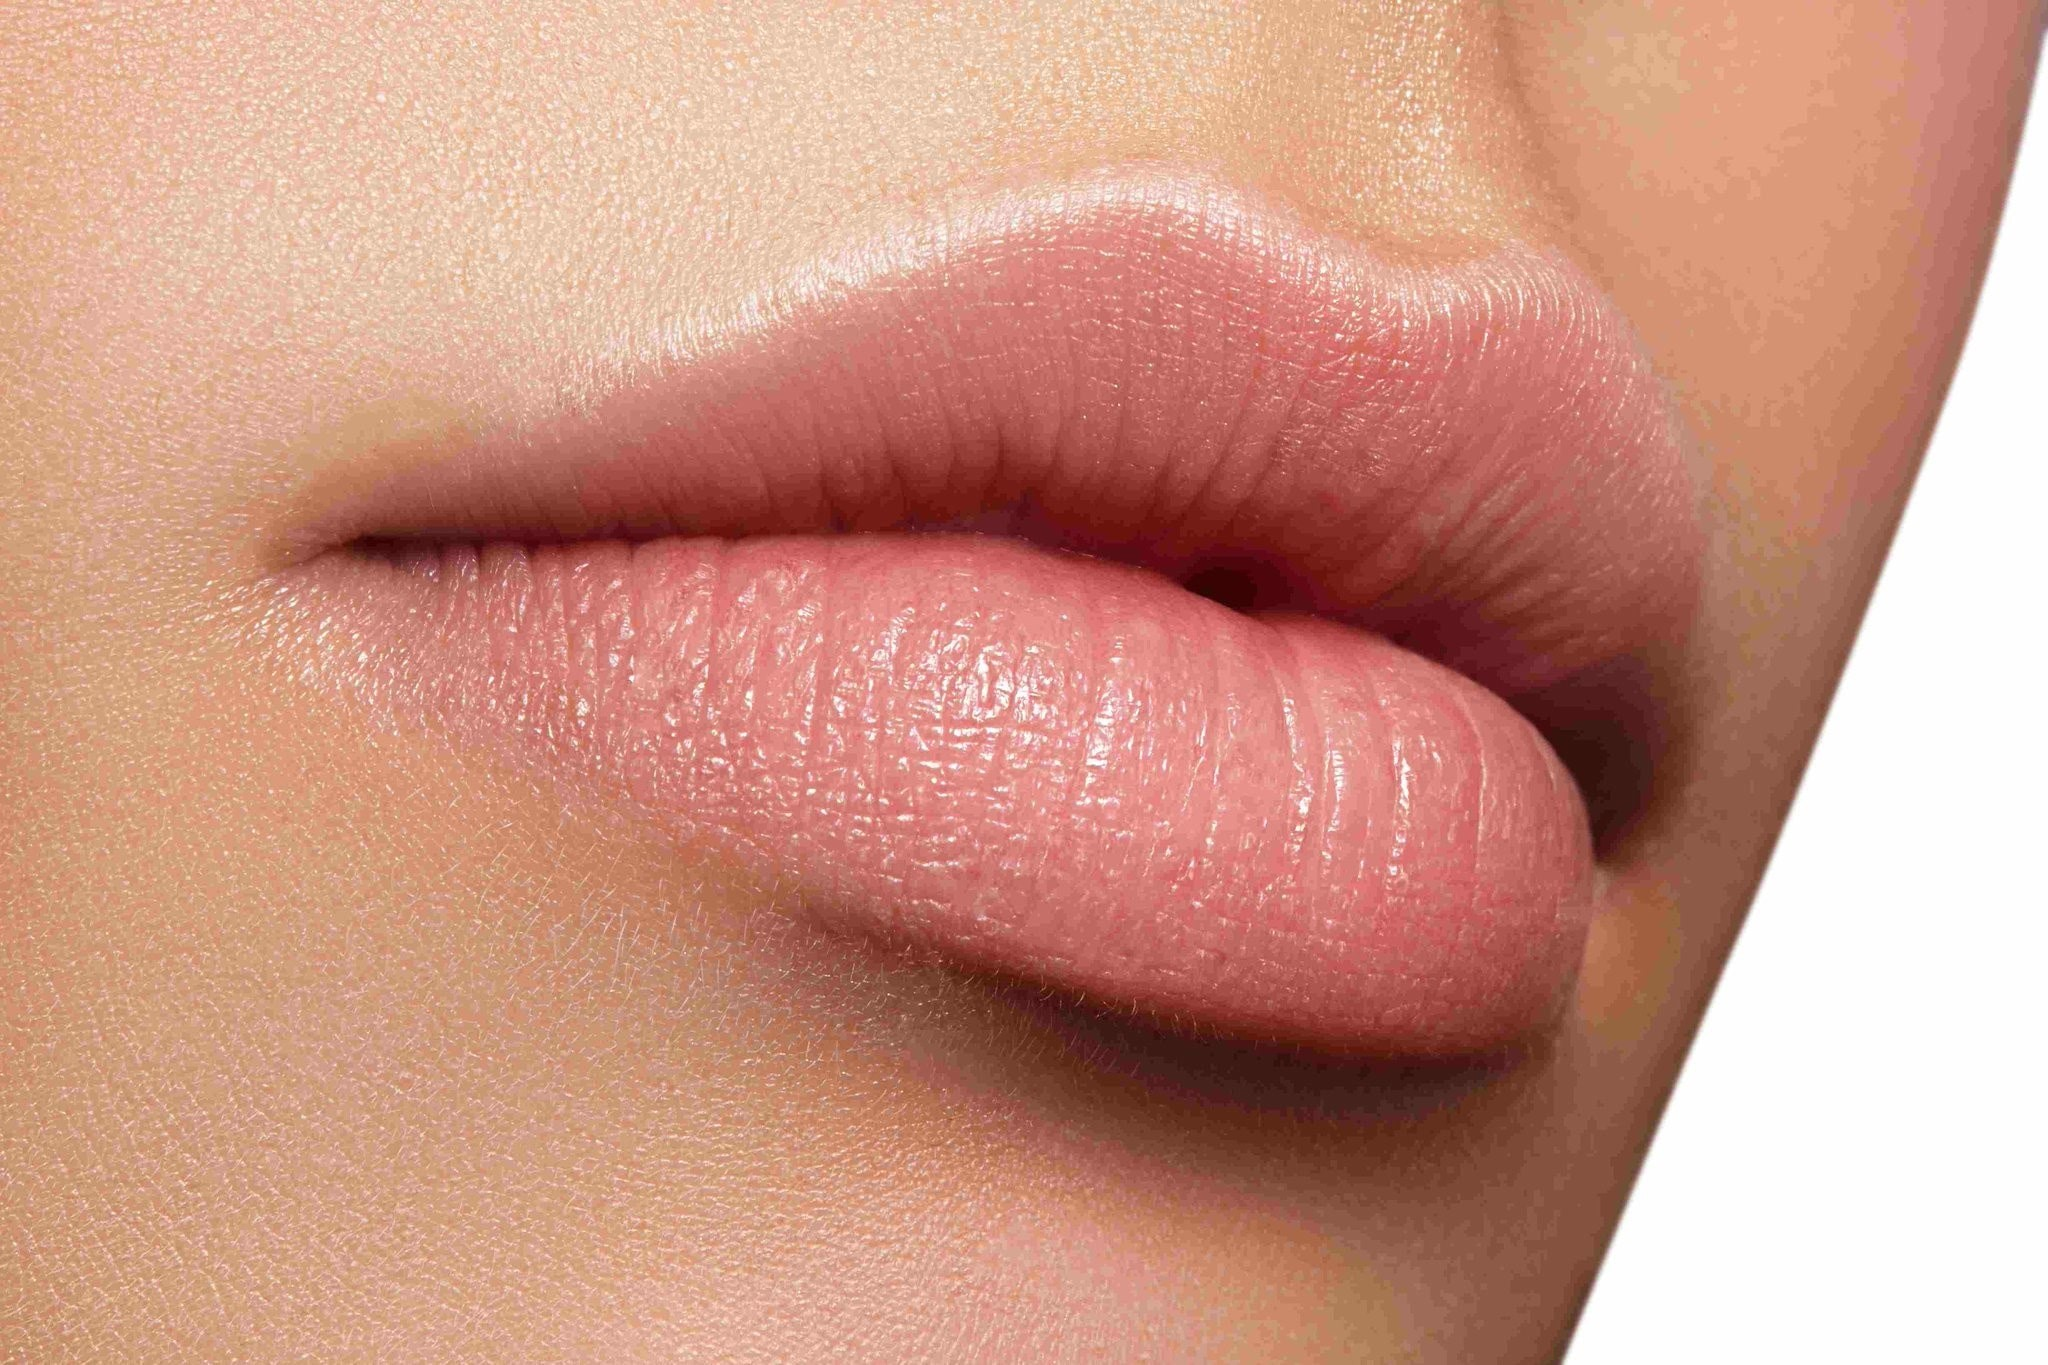 close up picture of a persons lips.